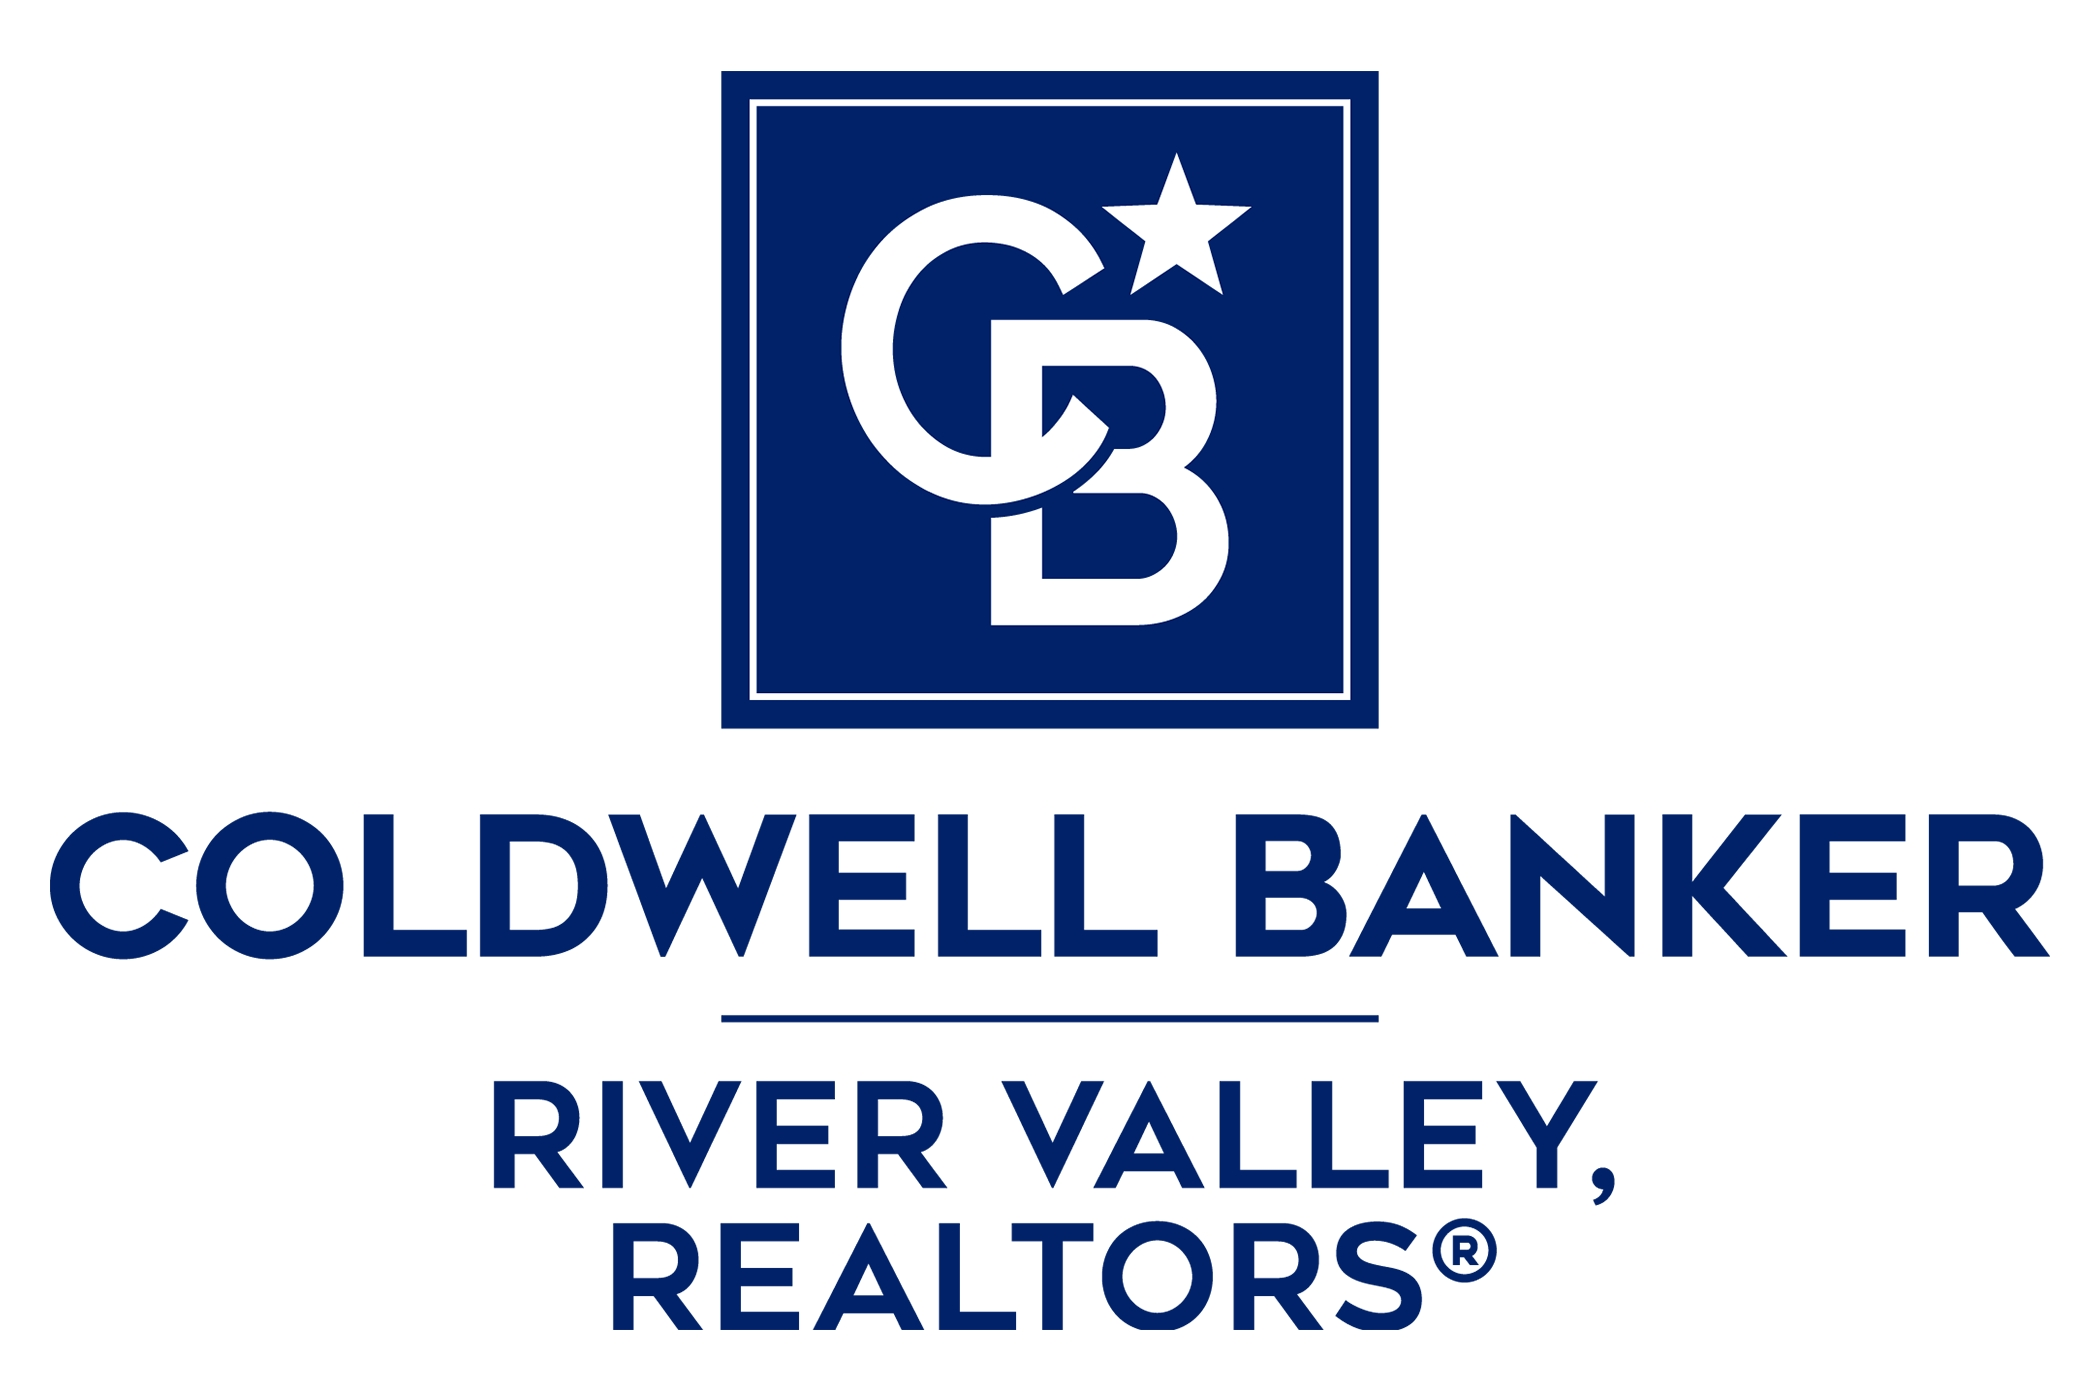 Julie Freiburger - Coldwell Banker River Valley Realtors